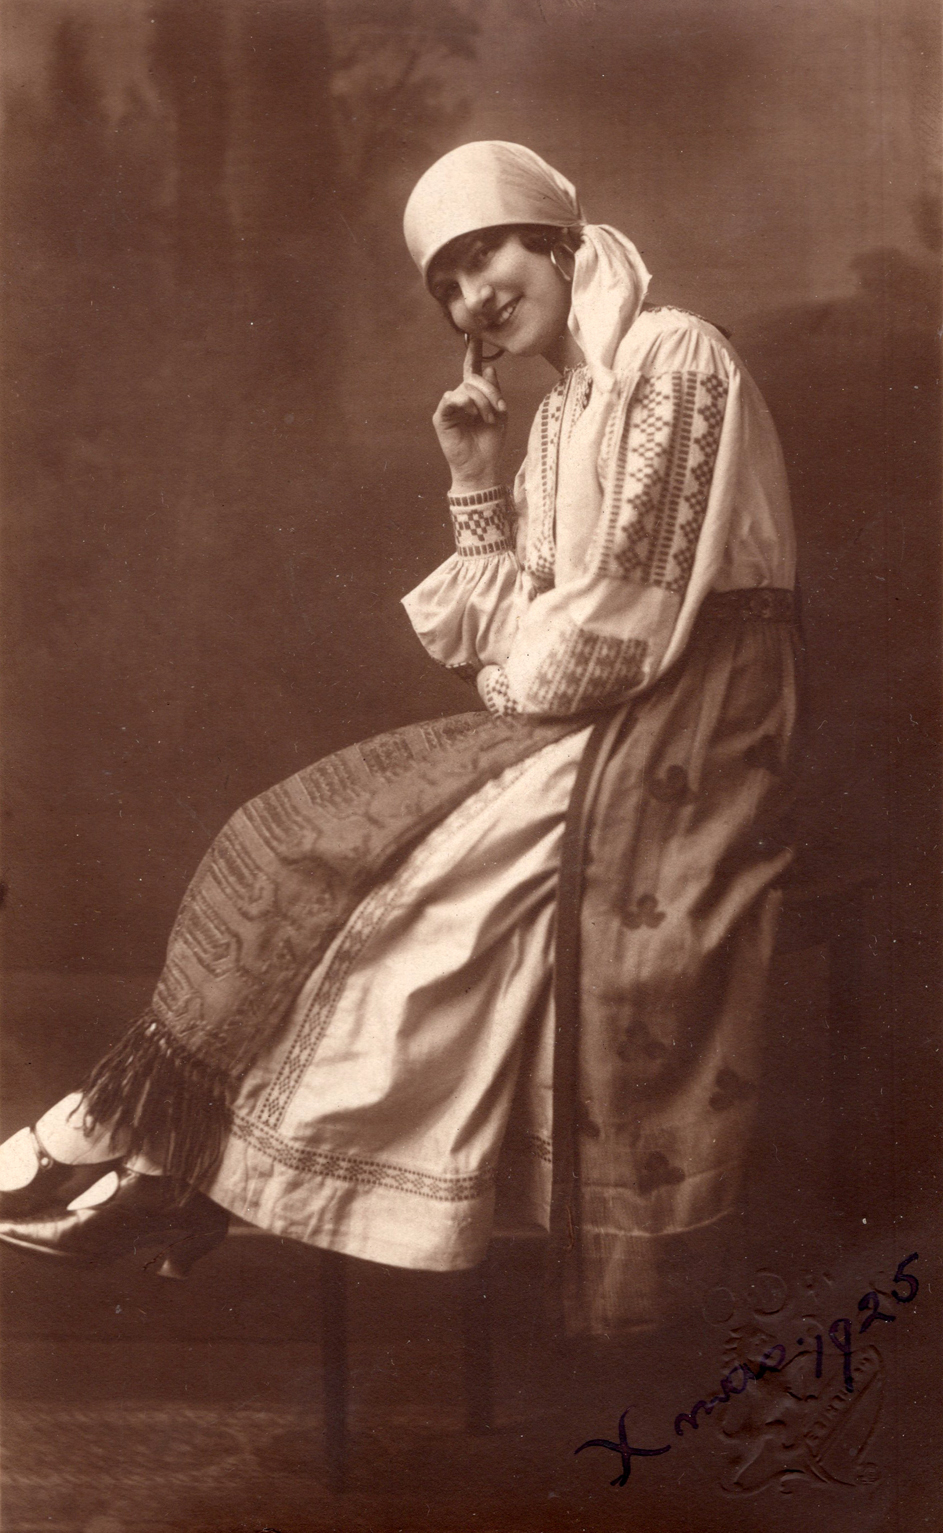 Studio Portrait Member Of The Leith Amateur Opera Company In Gypsy Costume 1925